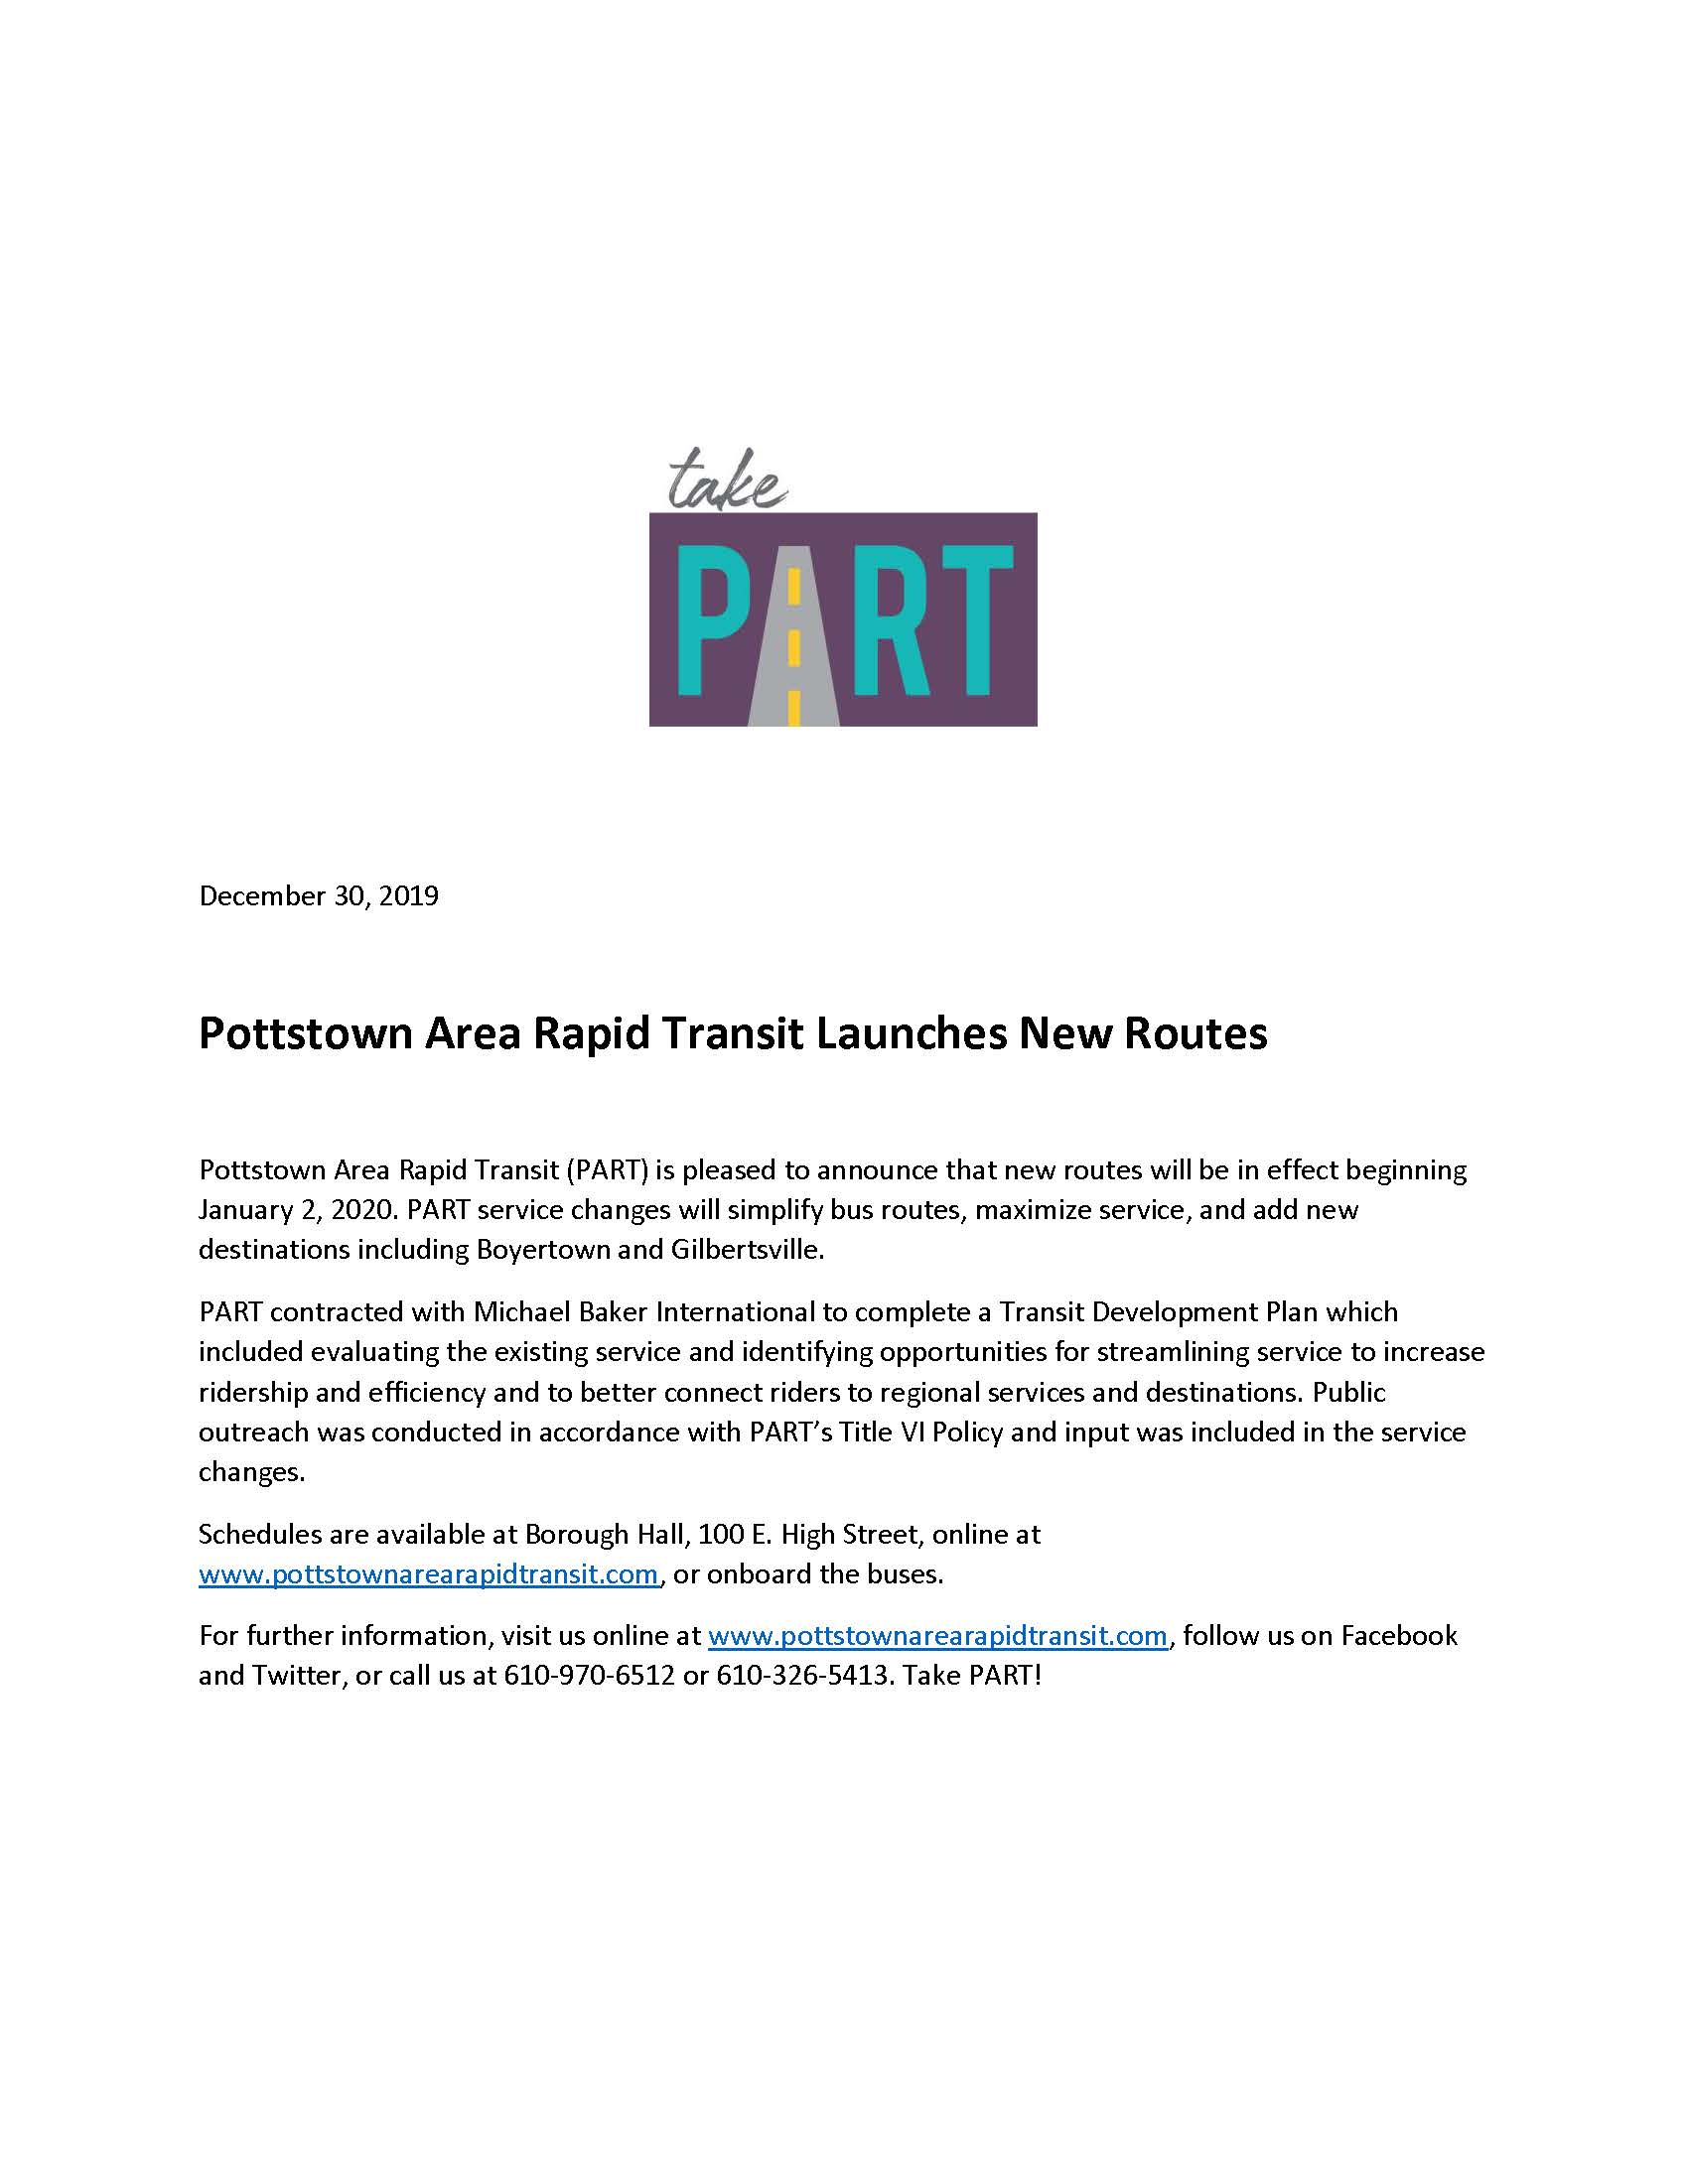 2020 New Routes Press Release